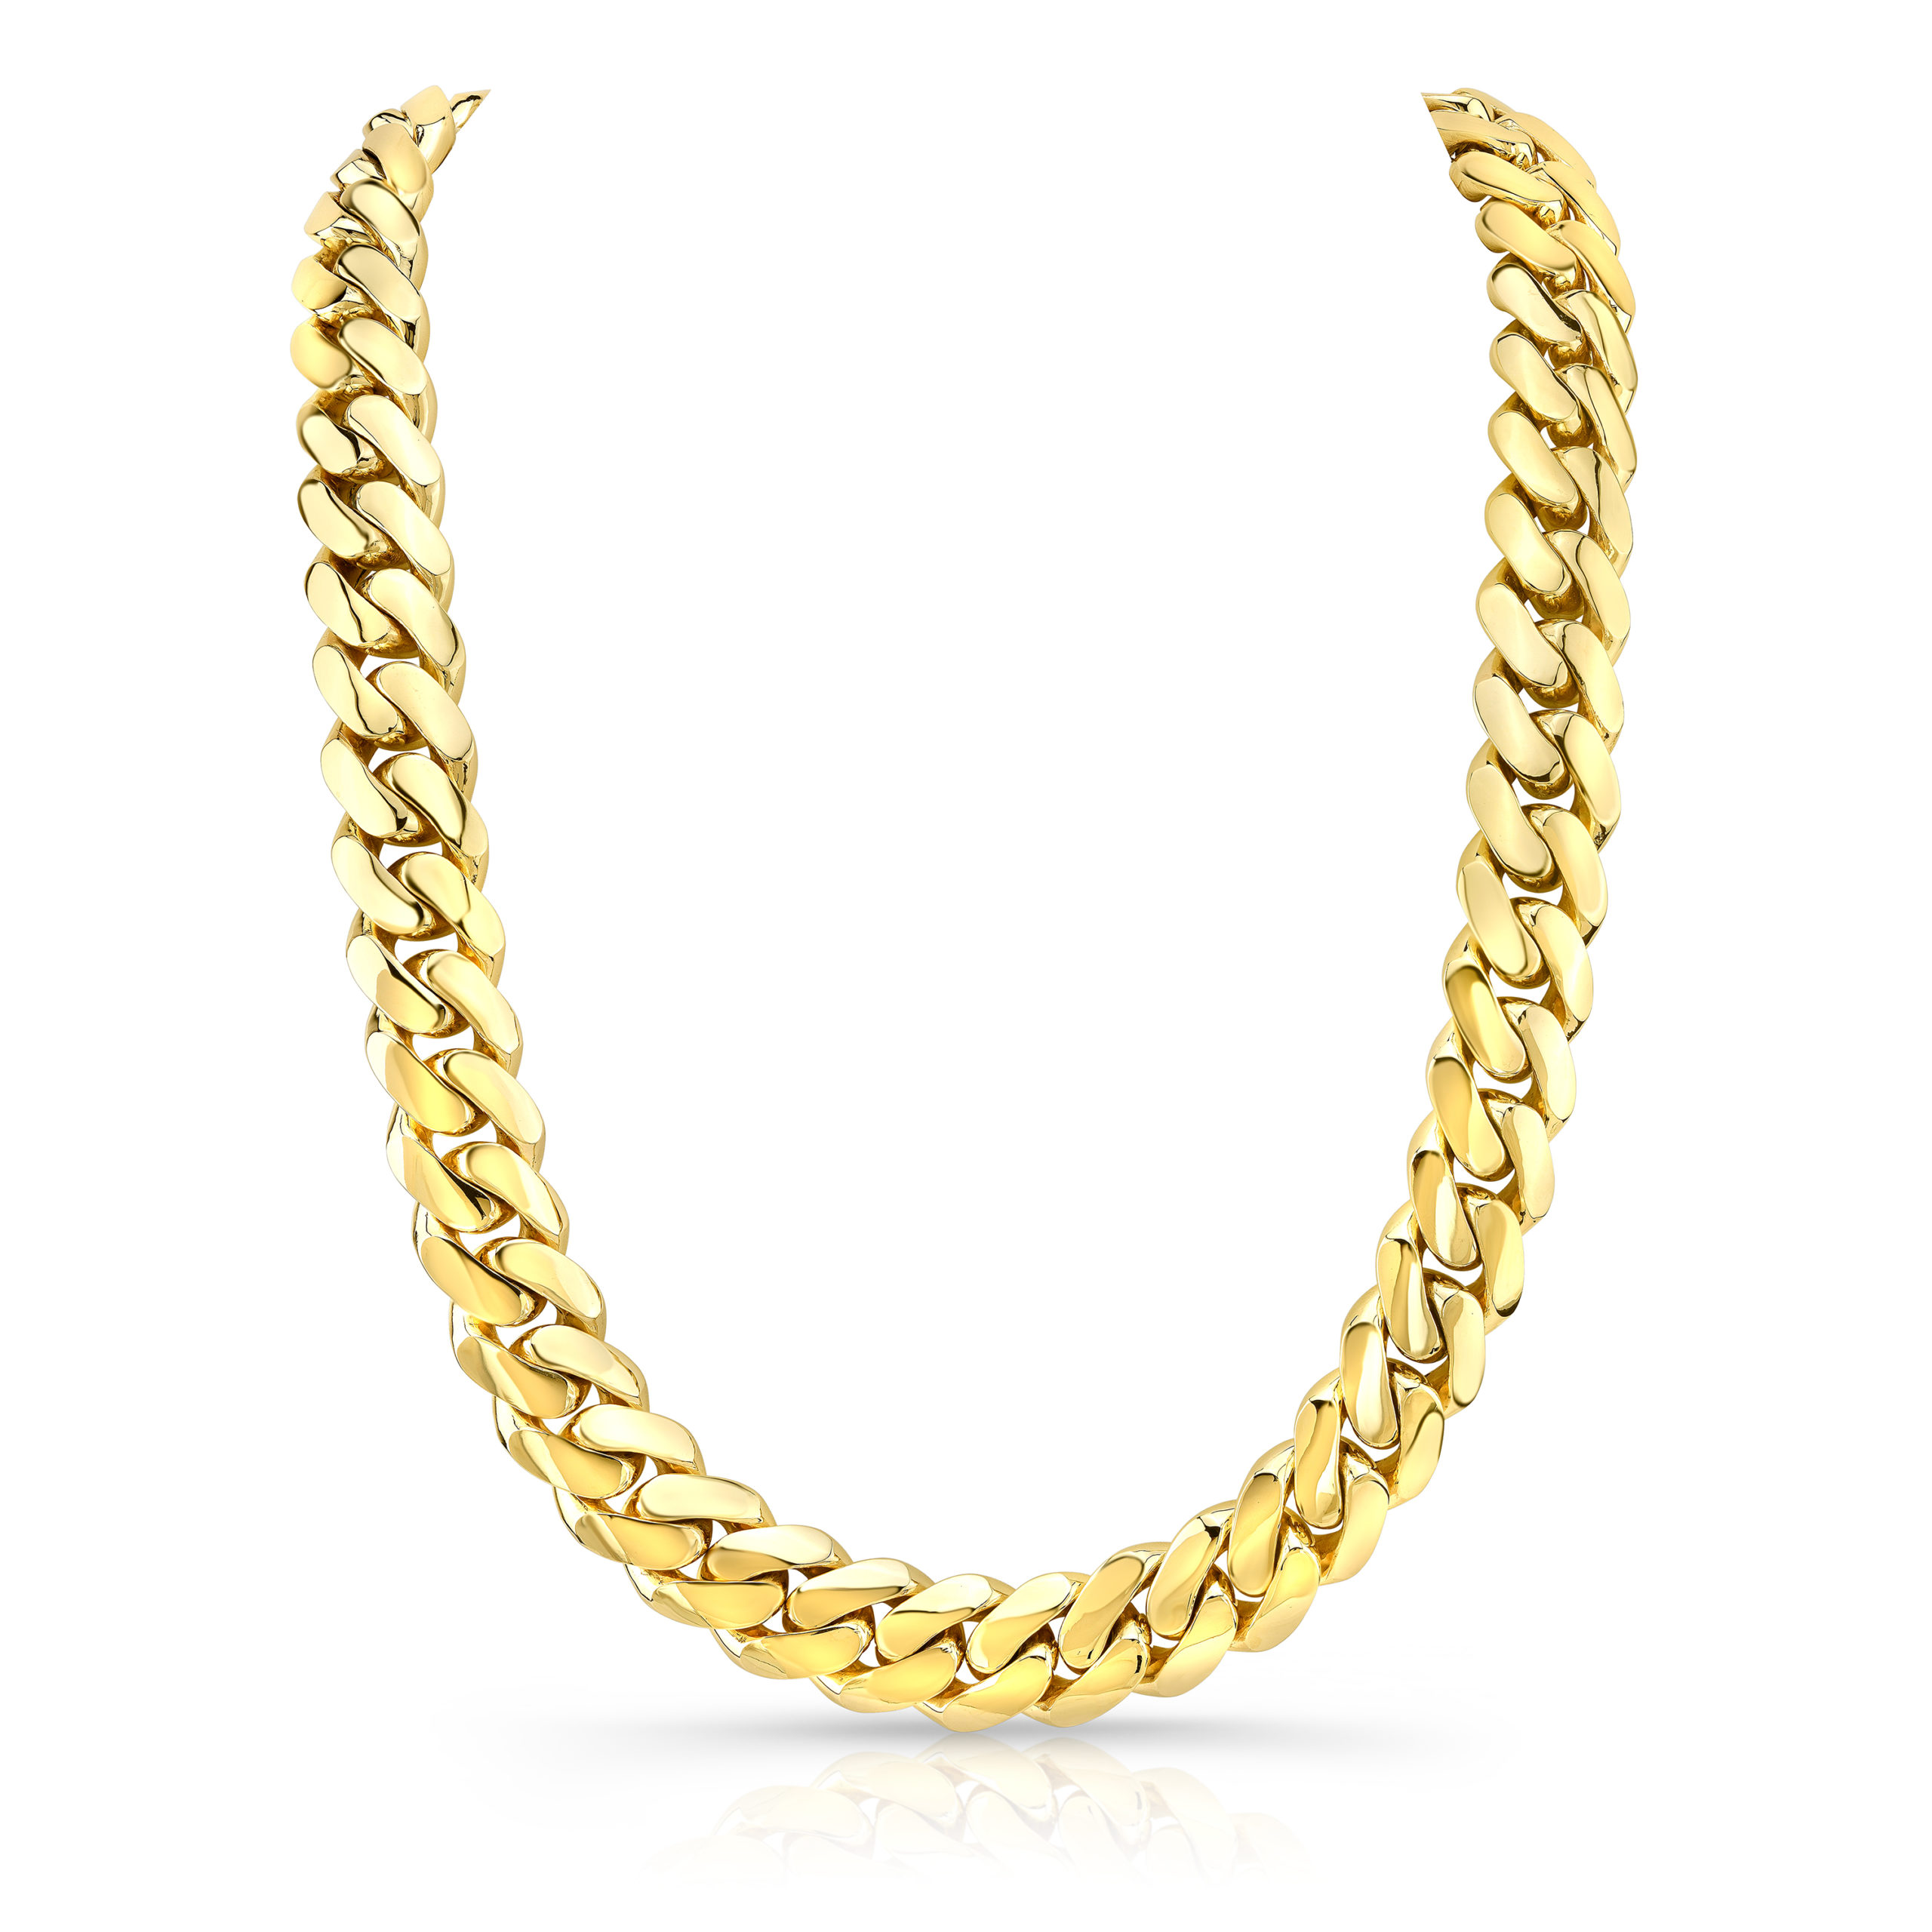 25mm Miami Cuban Link Chain